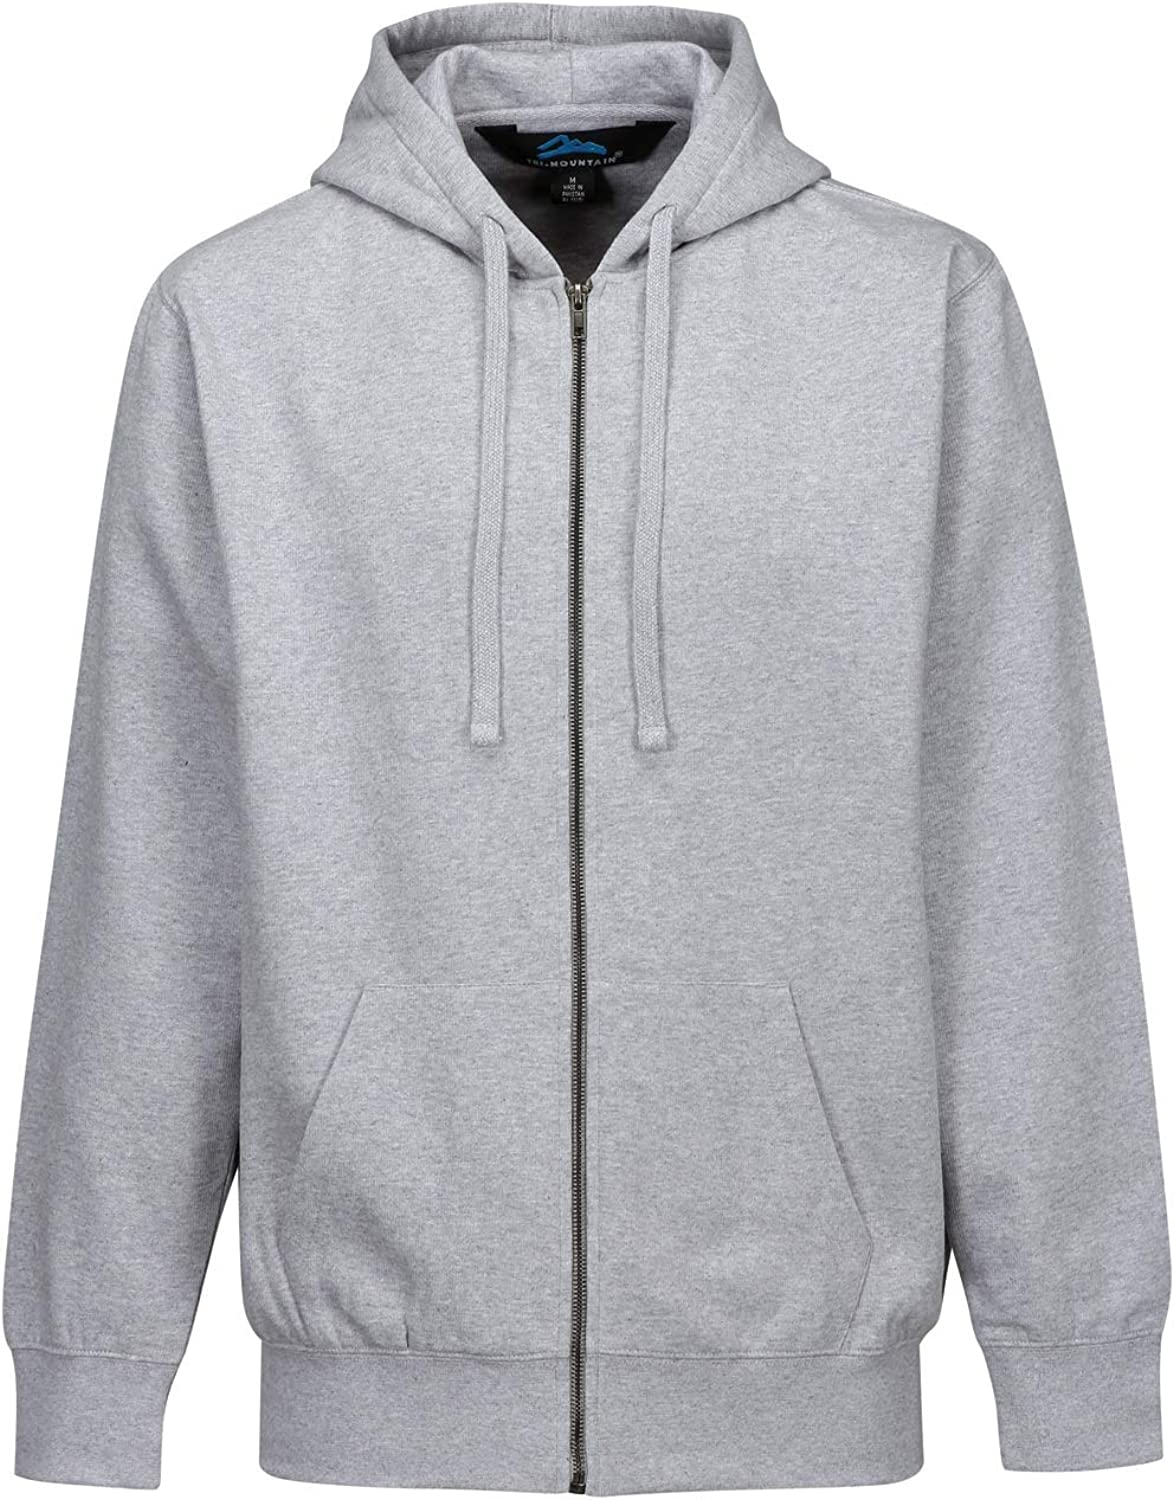 Big and Tall Thermal Lined Hoodie up to Size 7X Navy and Gray